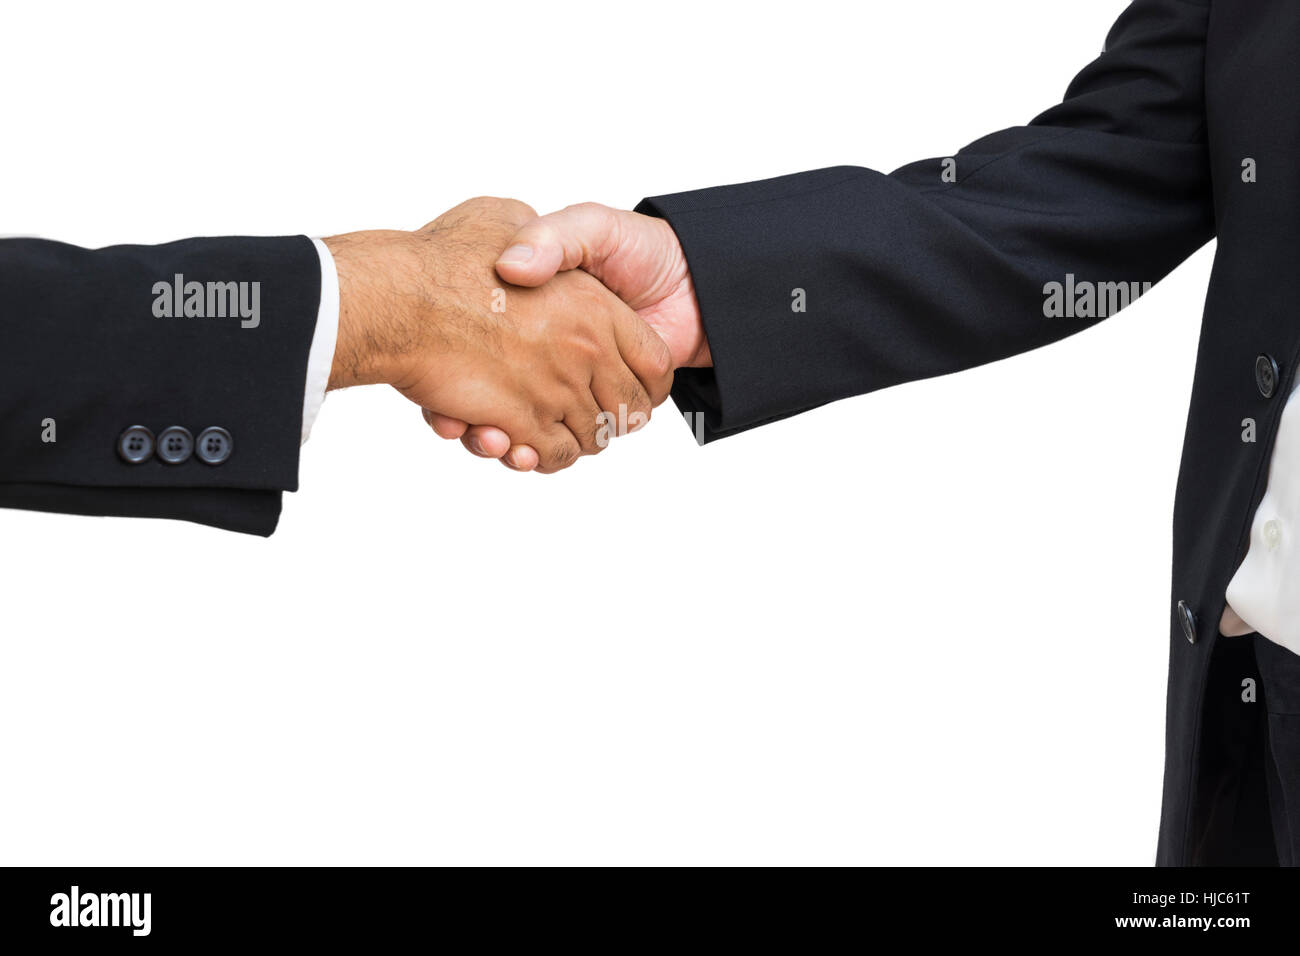 scene of hand shaking of businessman for commitment on isolate - can use to display or montage on product - Stock Image